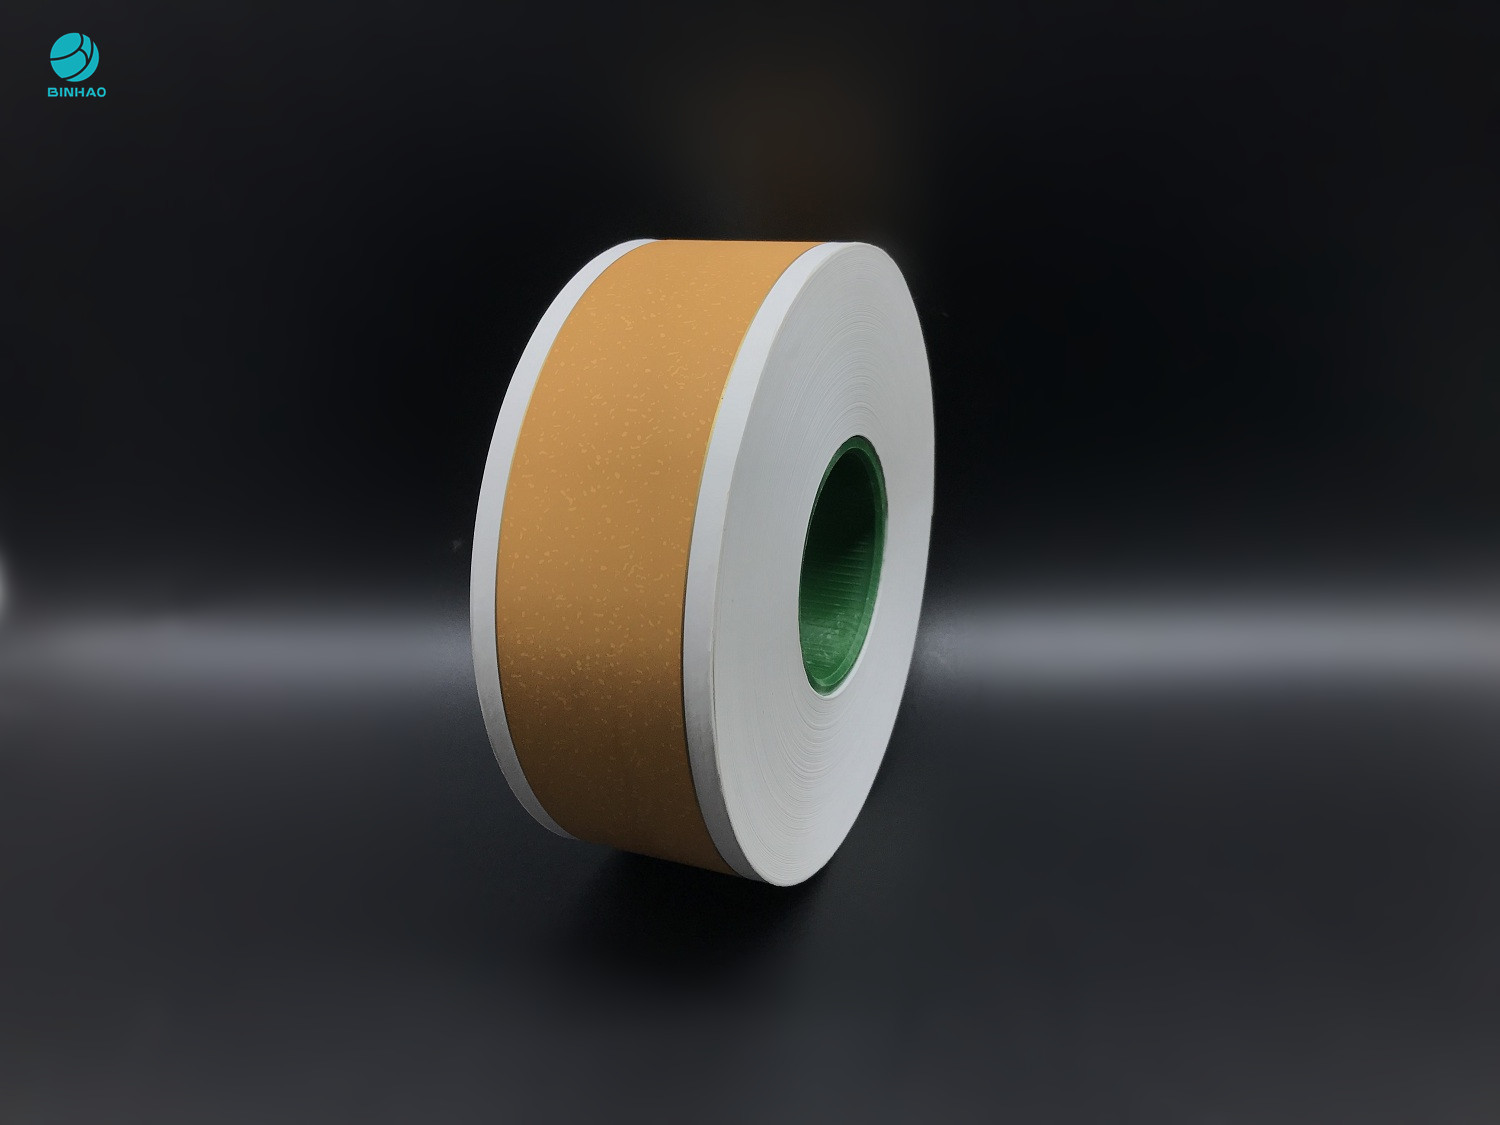 64mm Cork Tobacco Filter Paper Printed With 1 Gold Line For King Size Cigarette Packaging